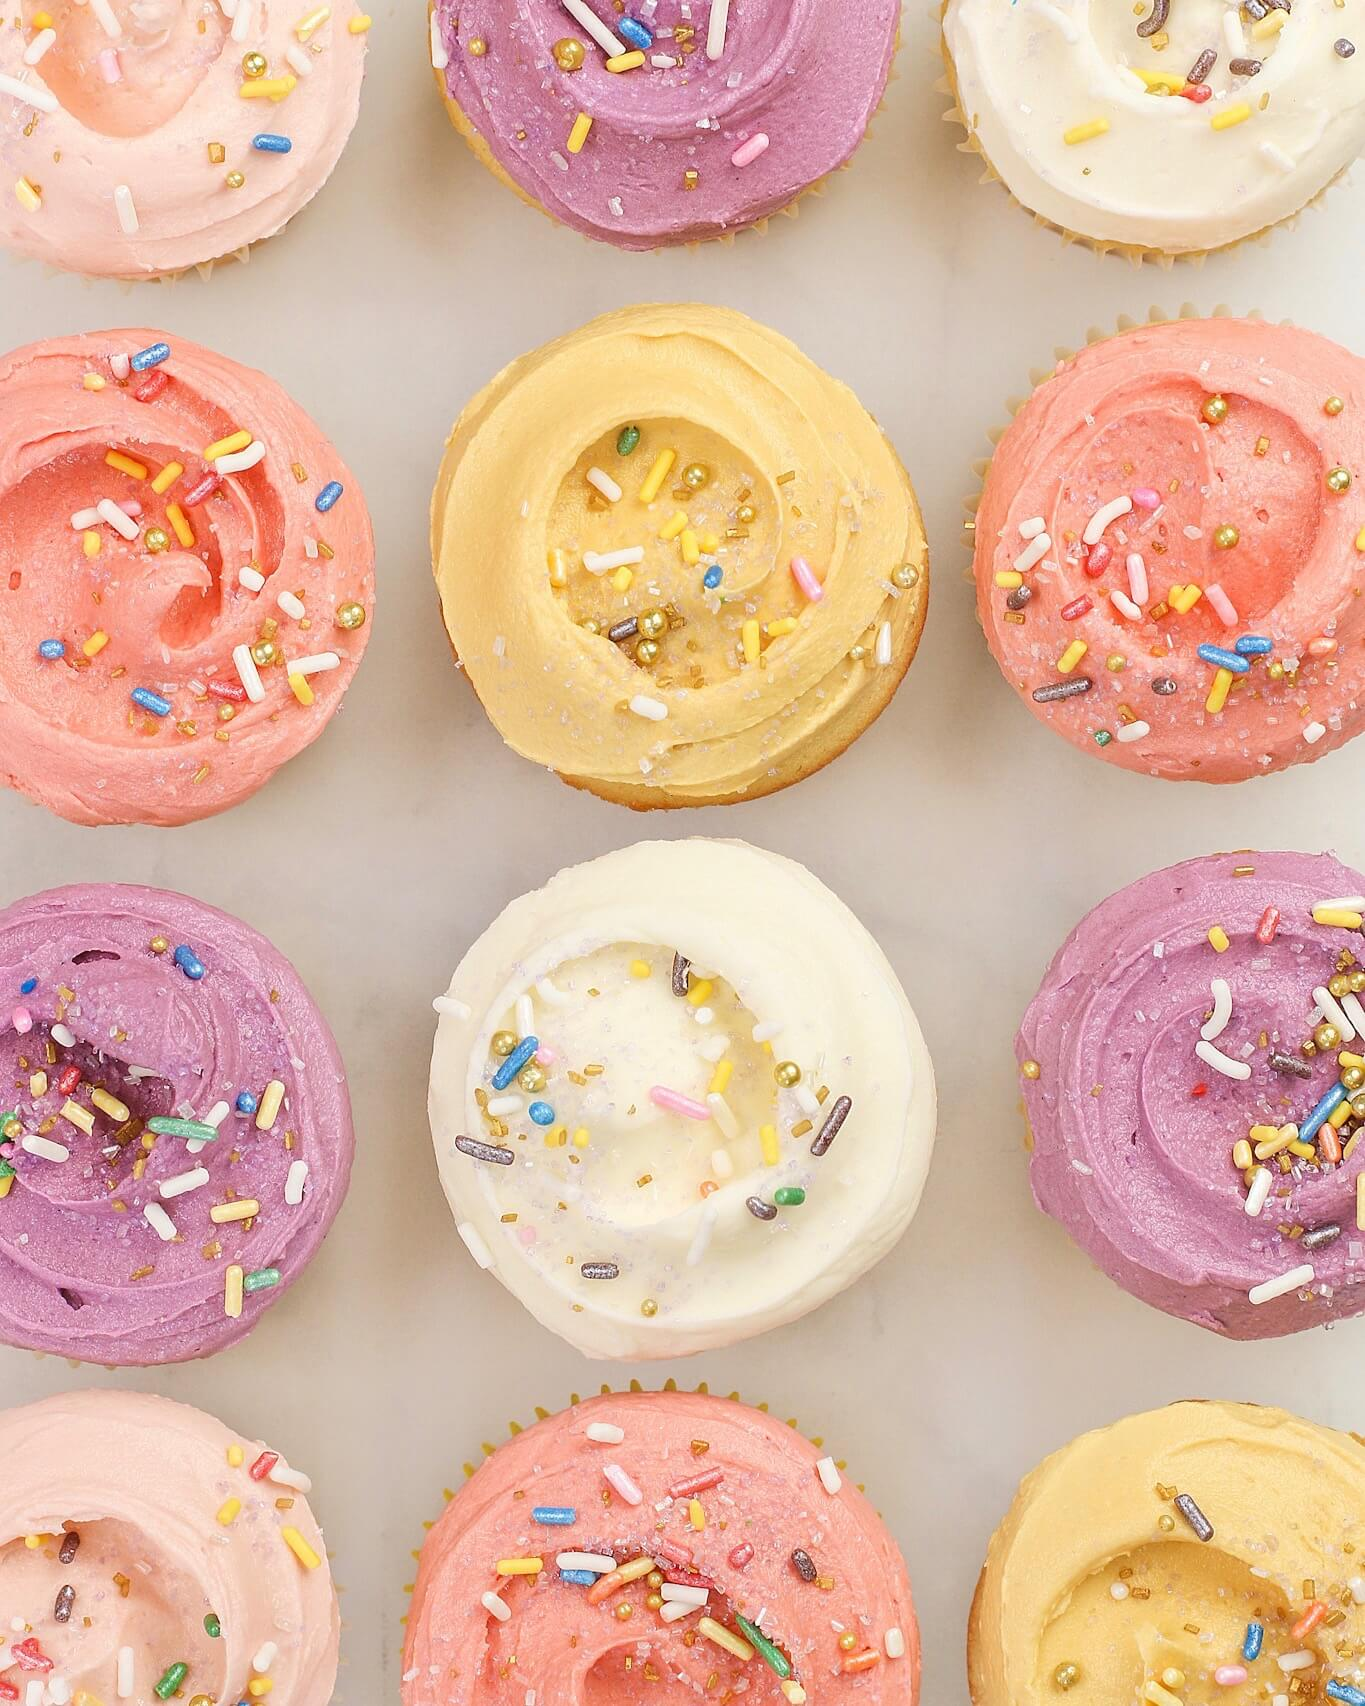 twelve birthday cake cupcakes in a row overhead with frosting and sprinkles